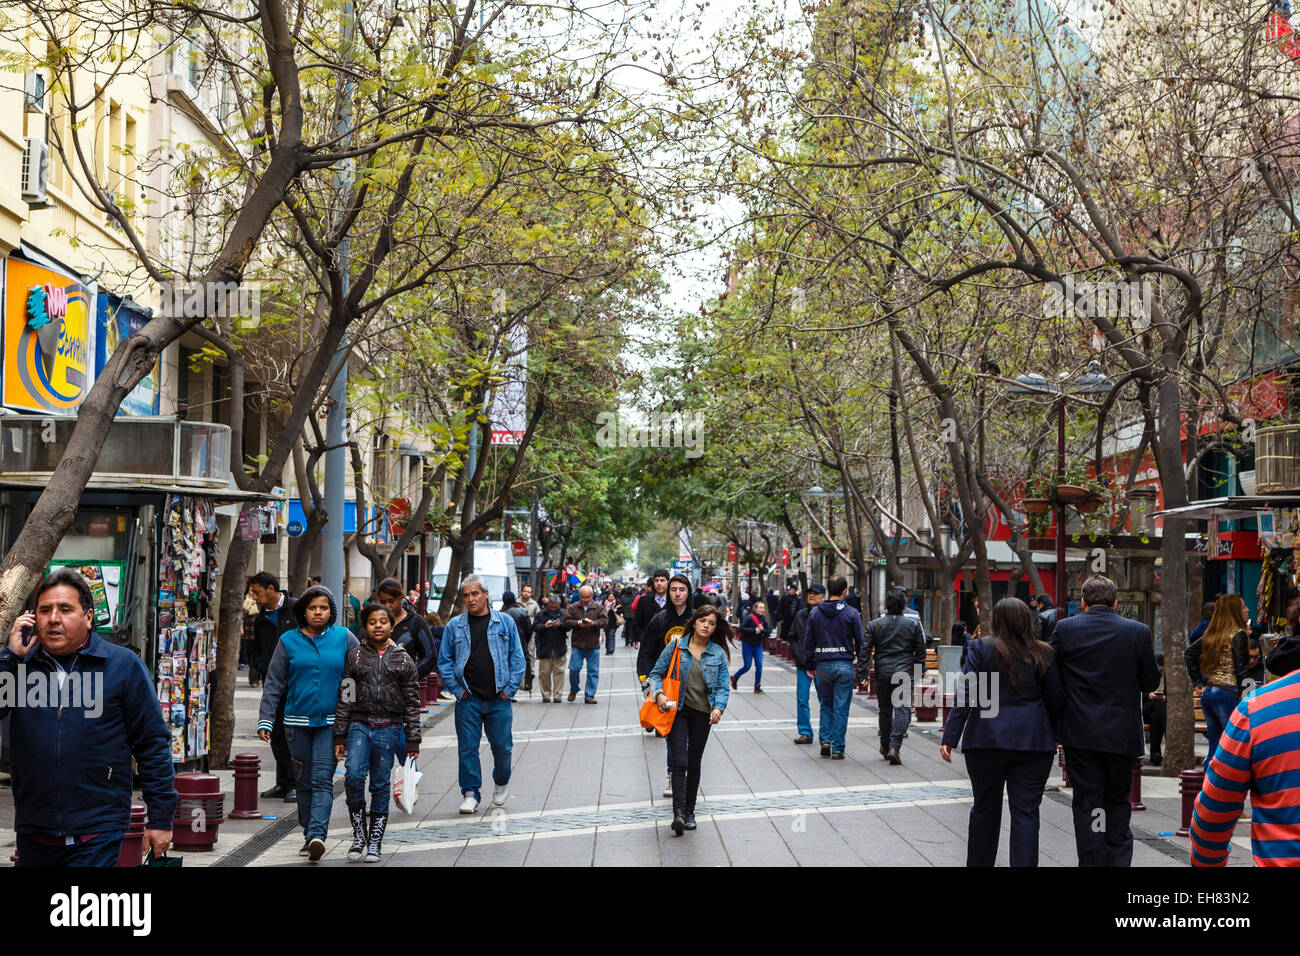 Pedestrian street in the city centre, Santiago, Chile, South America - Stock Image